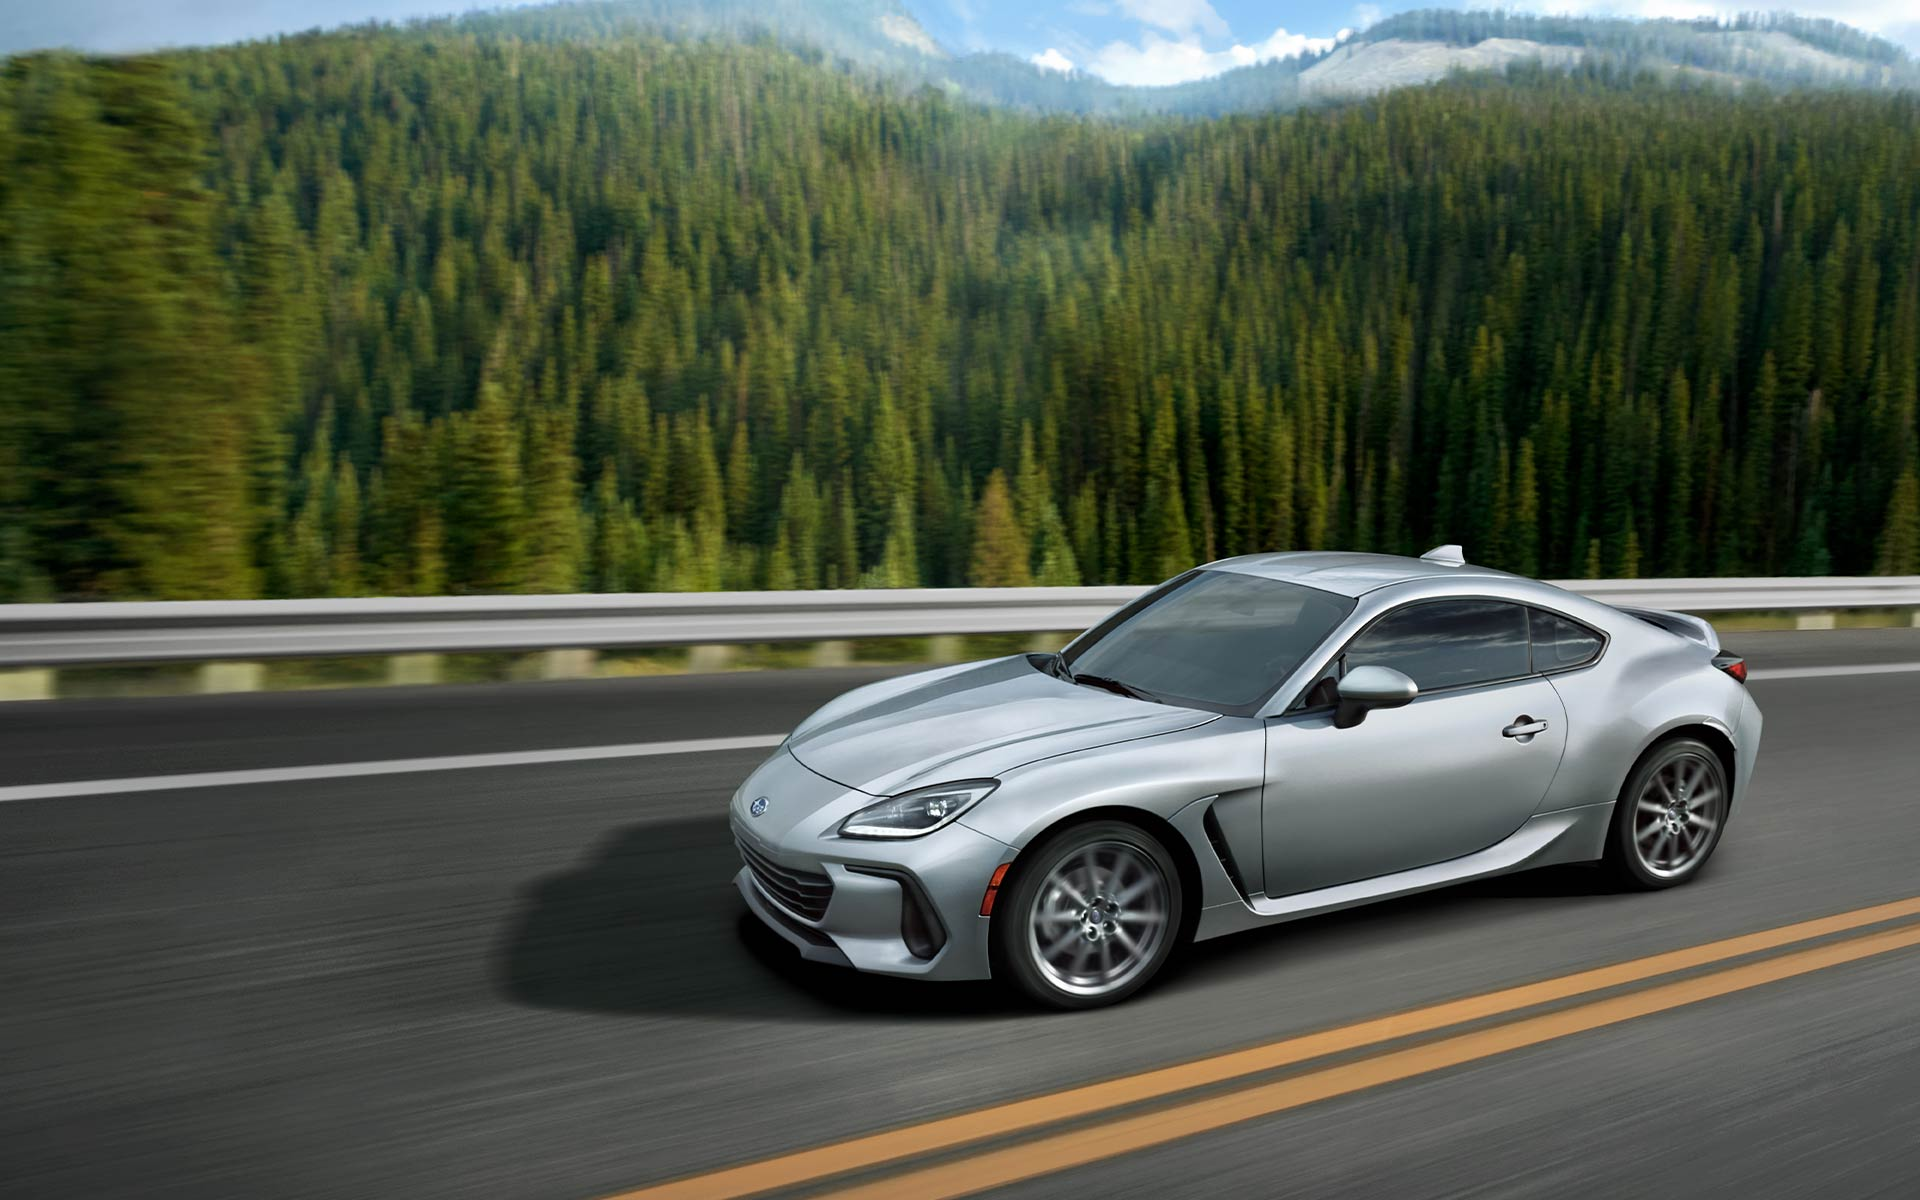 2022 Subaru BRZ driving down the road